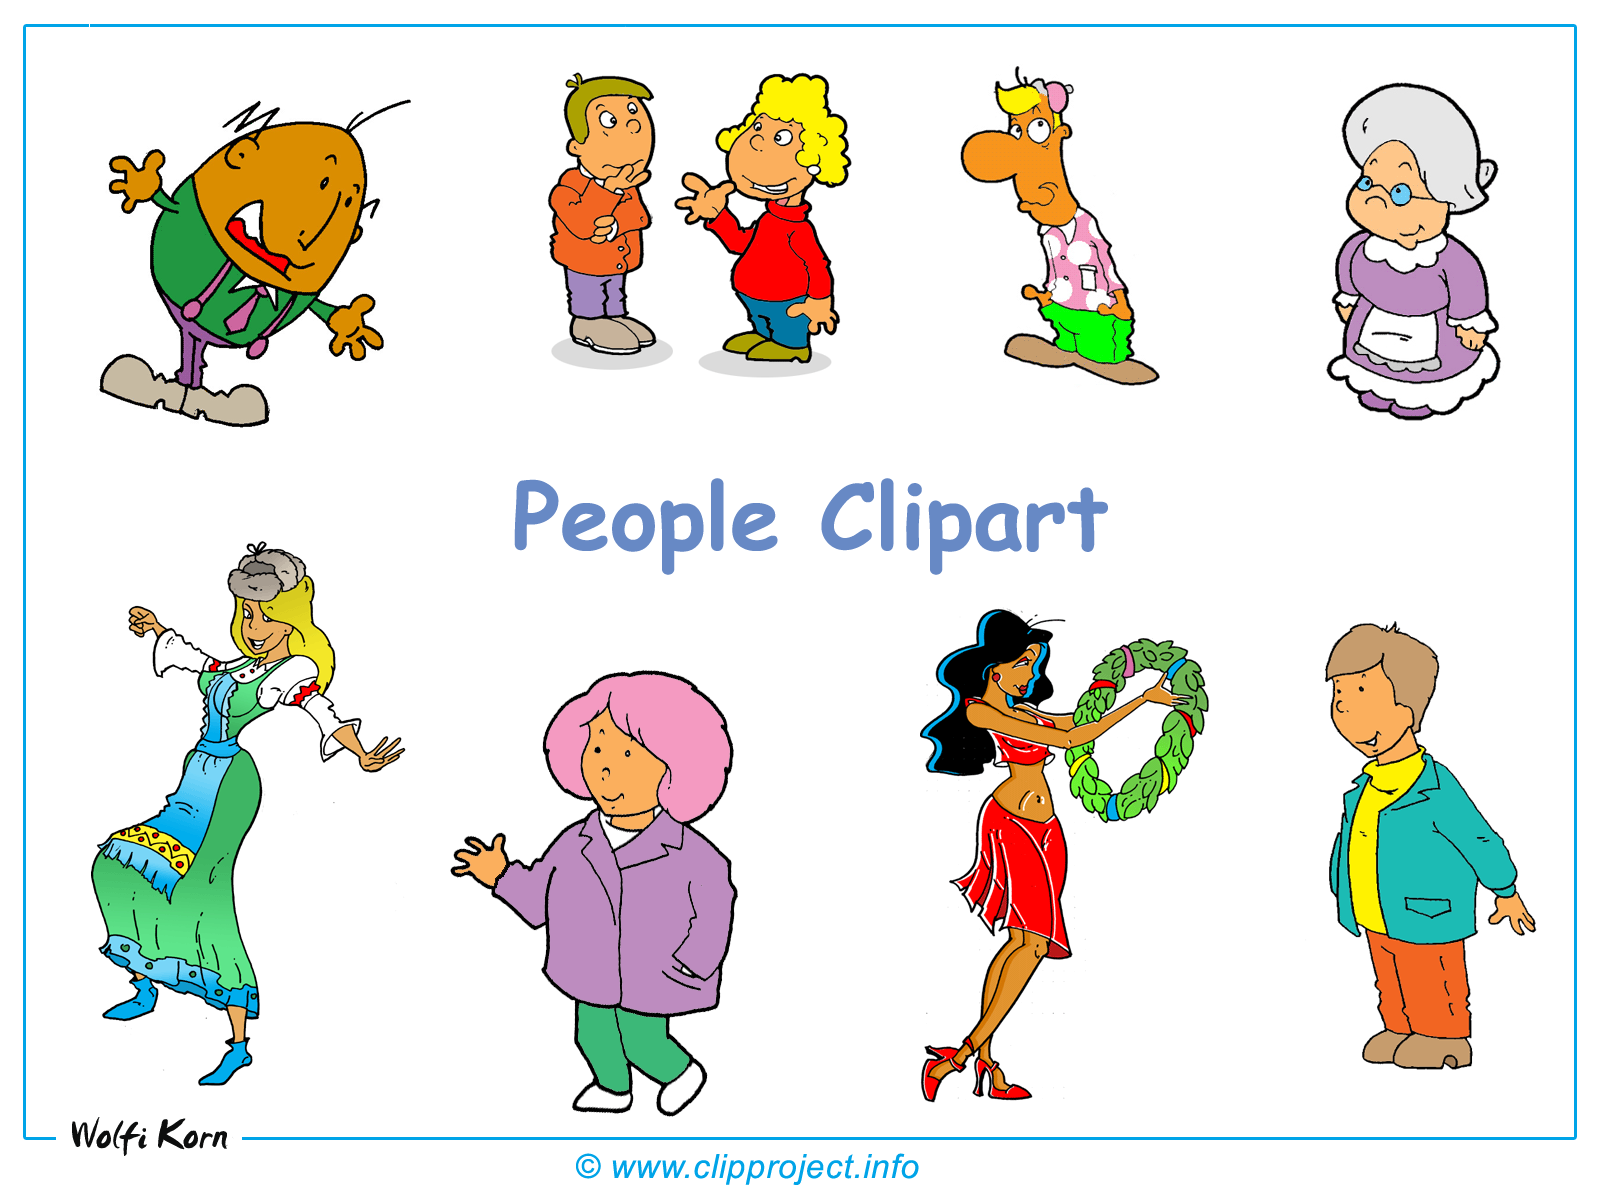 Cliparts free download graphic royalty free library Desktop Backgrounds Clip Art Images in high Resolution for free graphic royalty free library